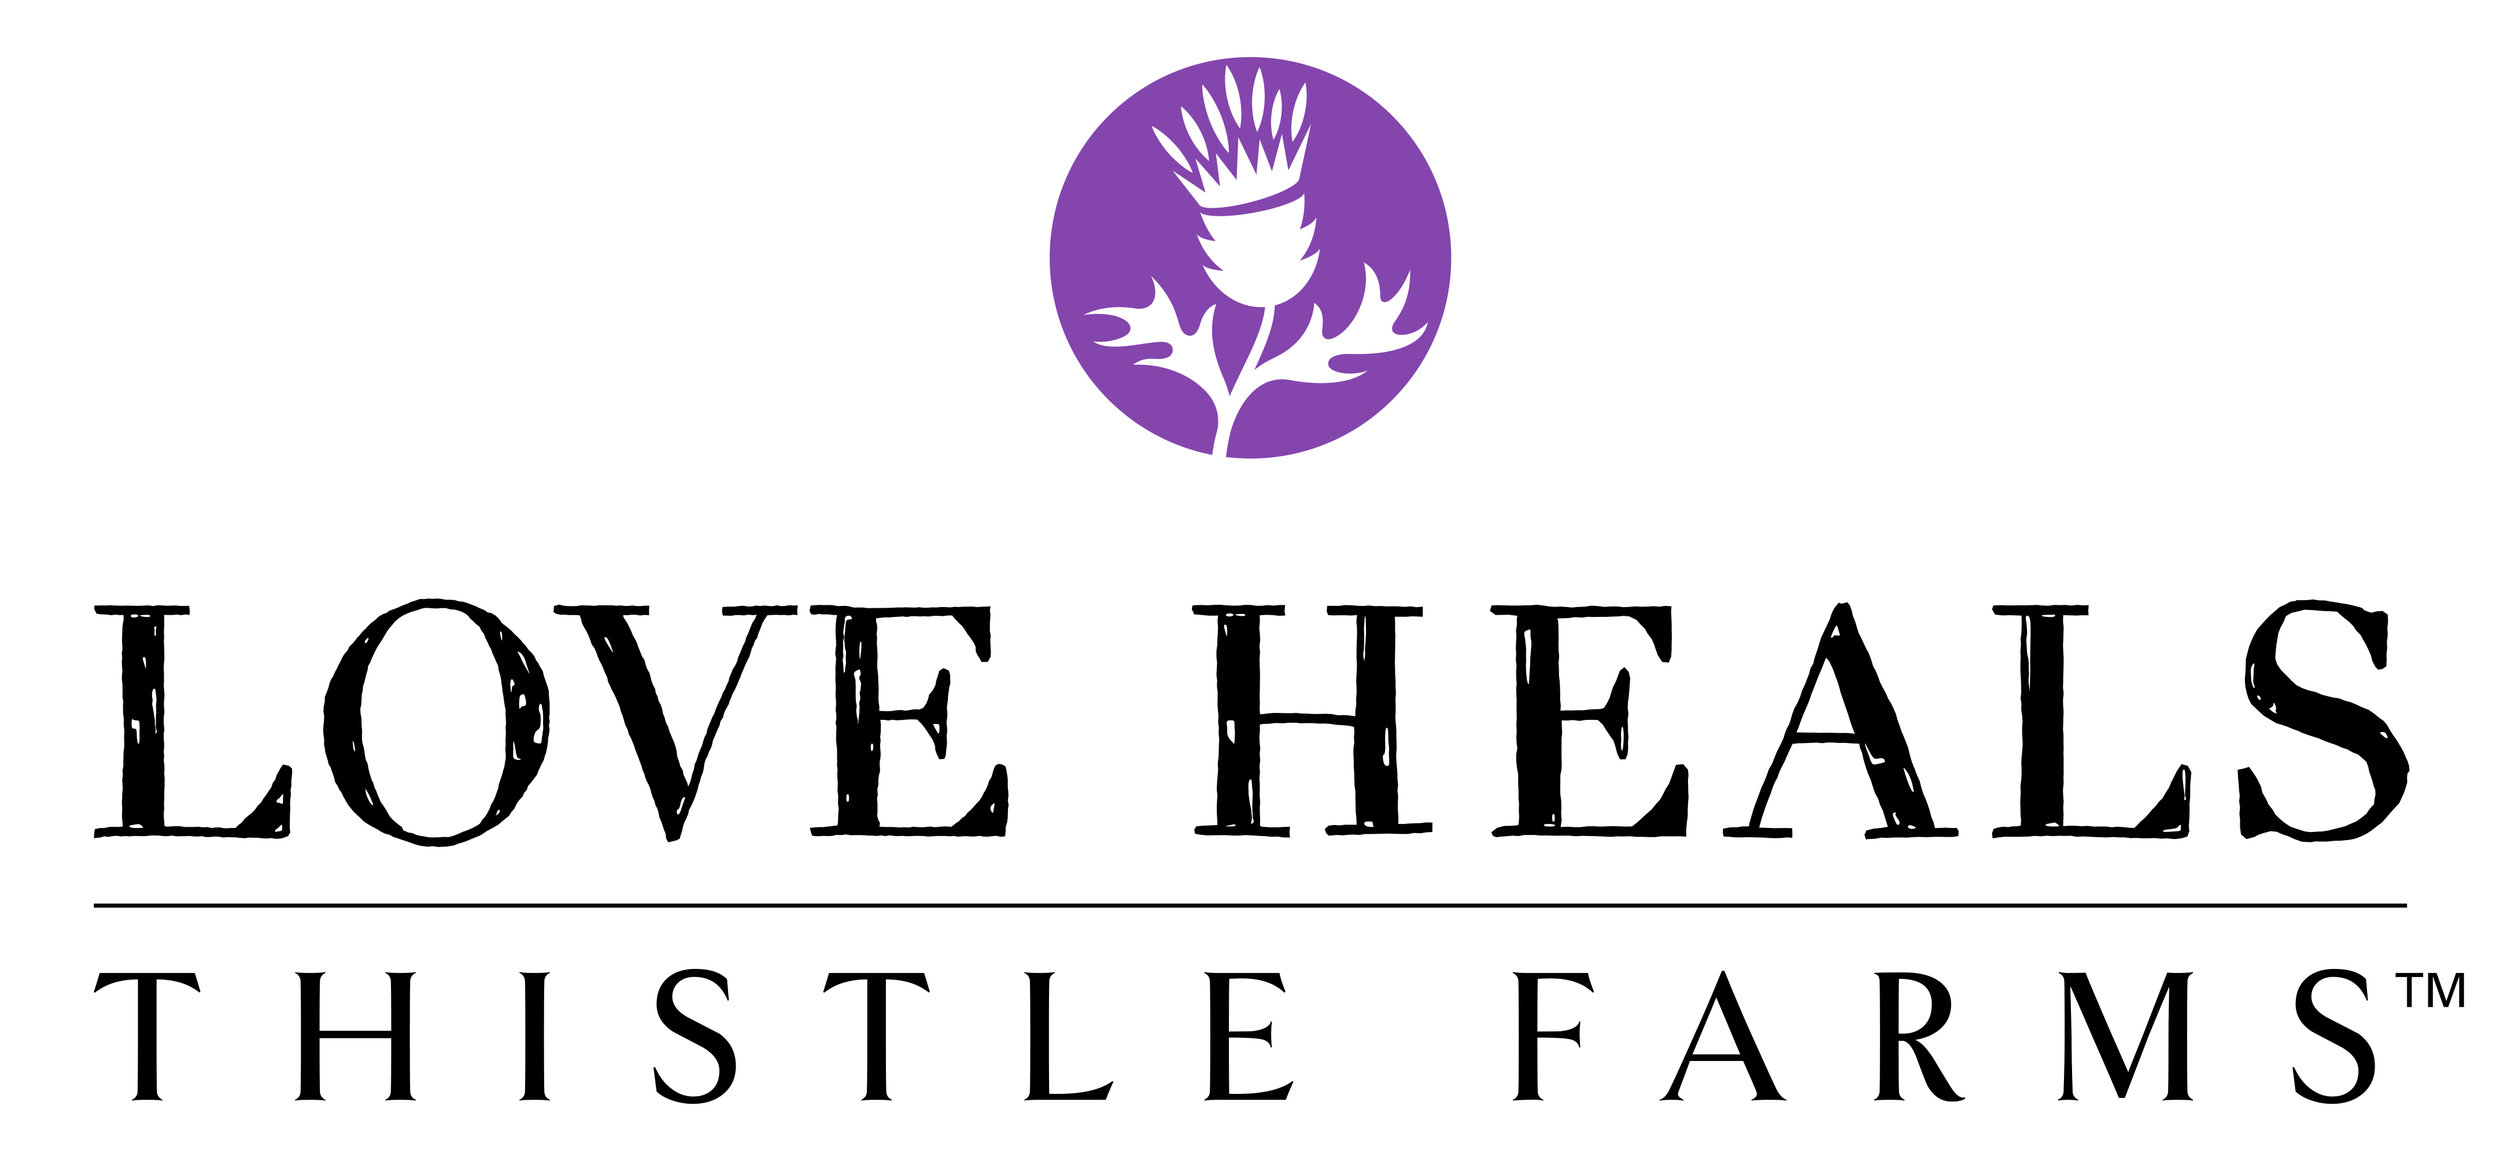 Thistle Farms logo.jpg